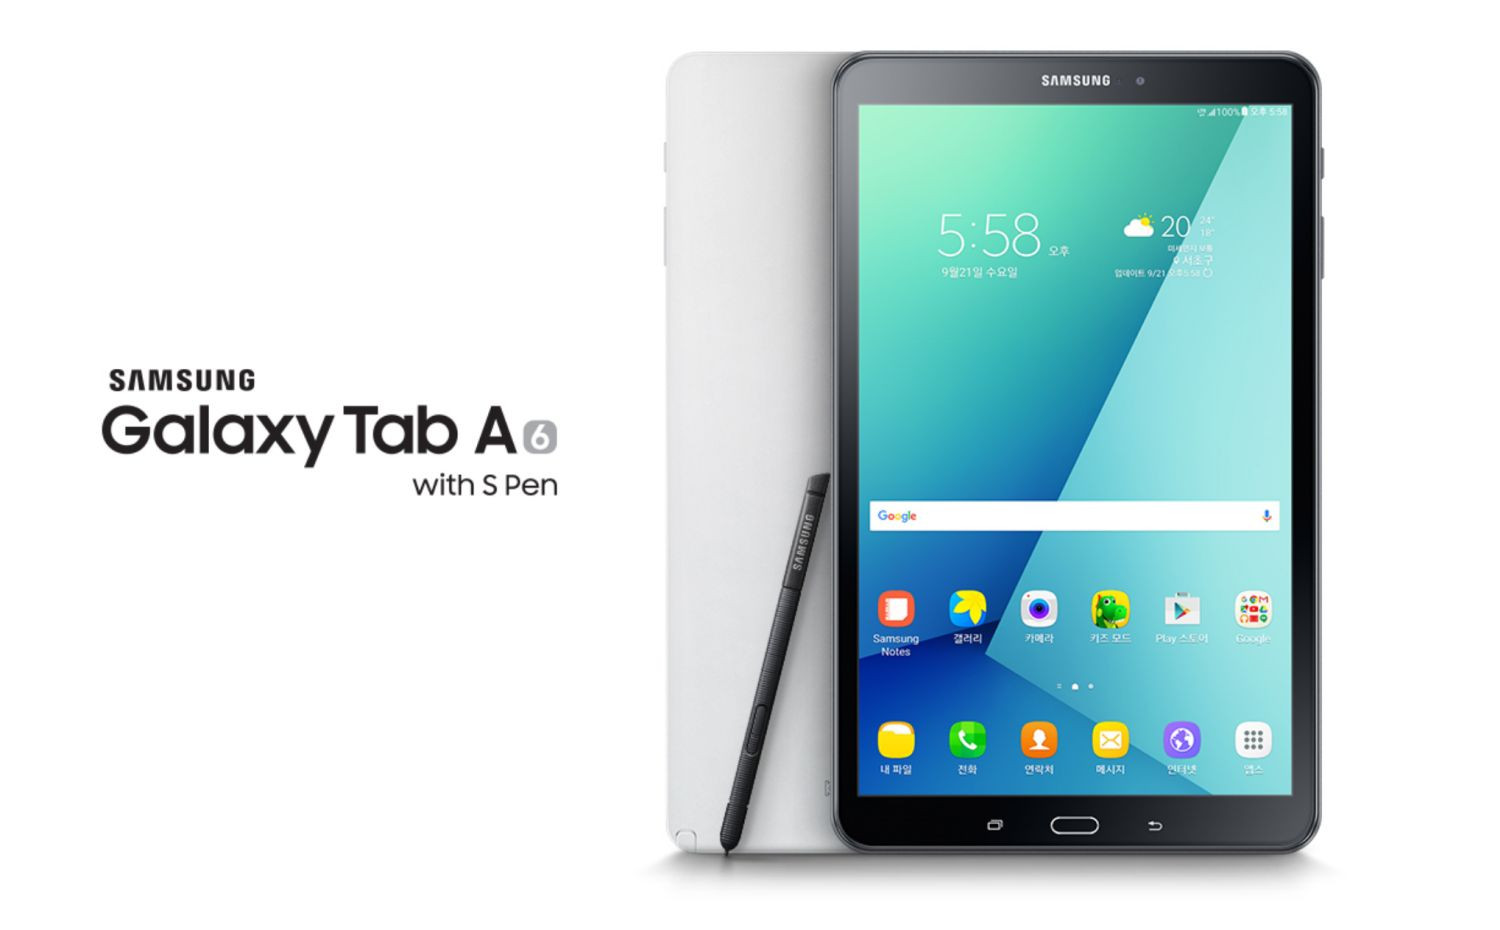 Samsung Galaxy Tab A 10.1 Innovador Samsung Po Cichu Zaprezentował Galaxy Tab A 10 1 Z Of Samsung Galaxy Tab A 10.1 Increíble Best Prices On Samsung Galaxy Tablet 10 1 with Wifi 16gb